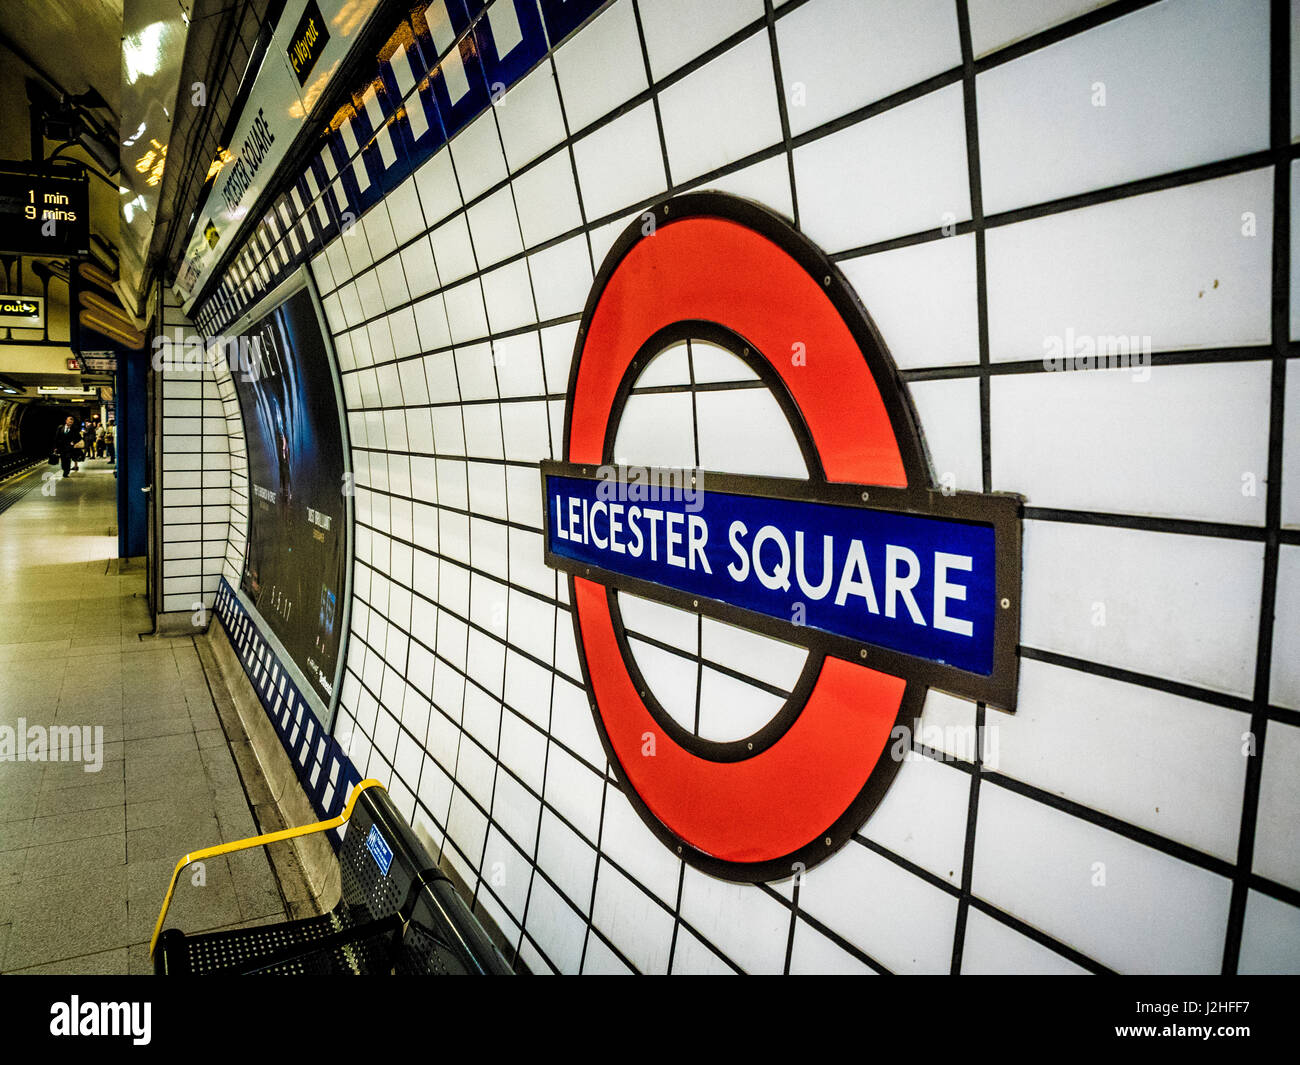 Leicester Square tube station logo on station wall, London, UK. Stock Photo